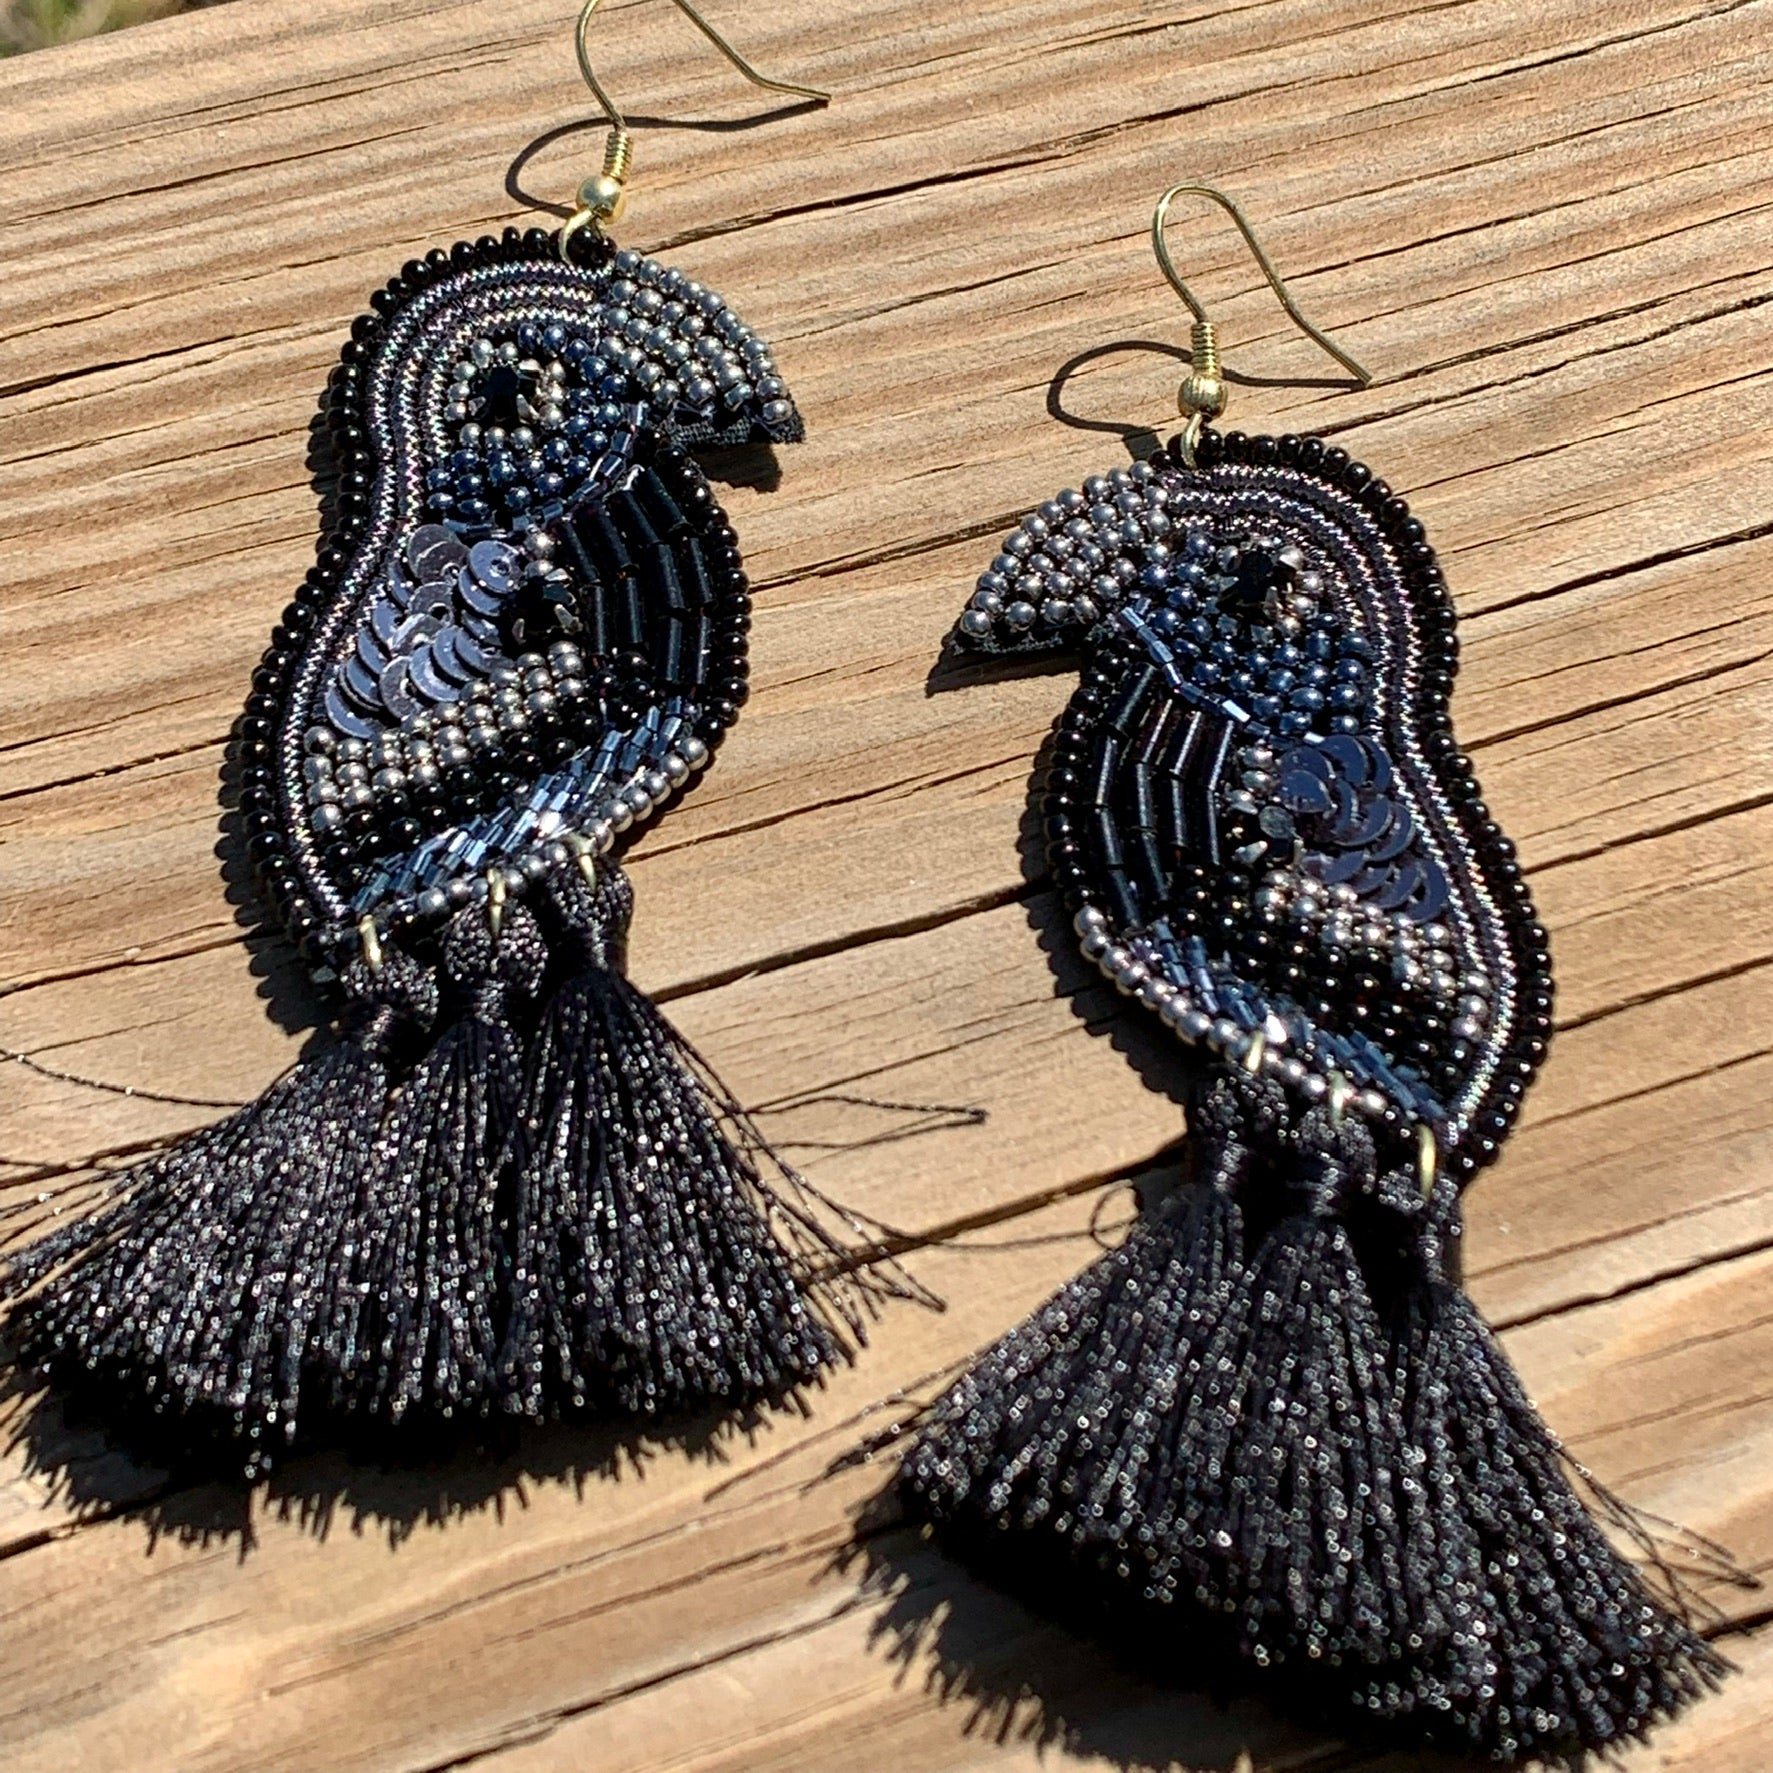 Parrot Beaded Ear Ring Black